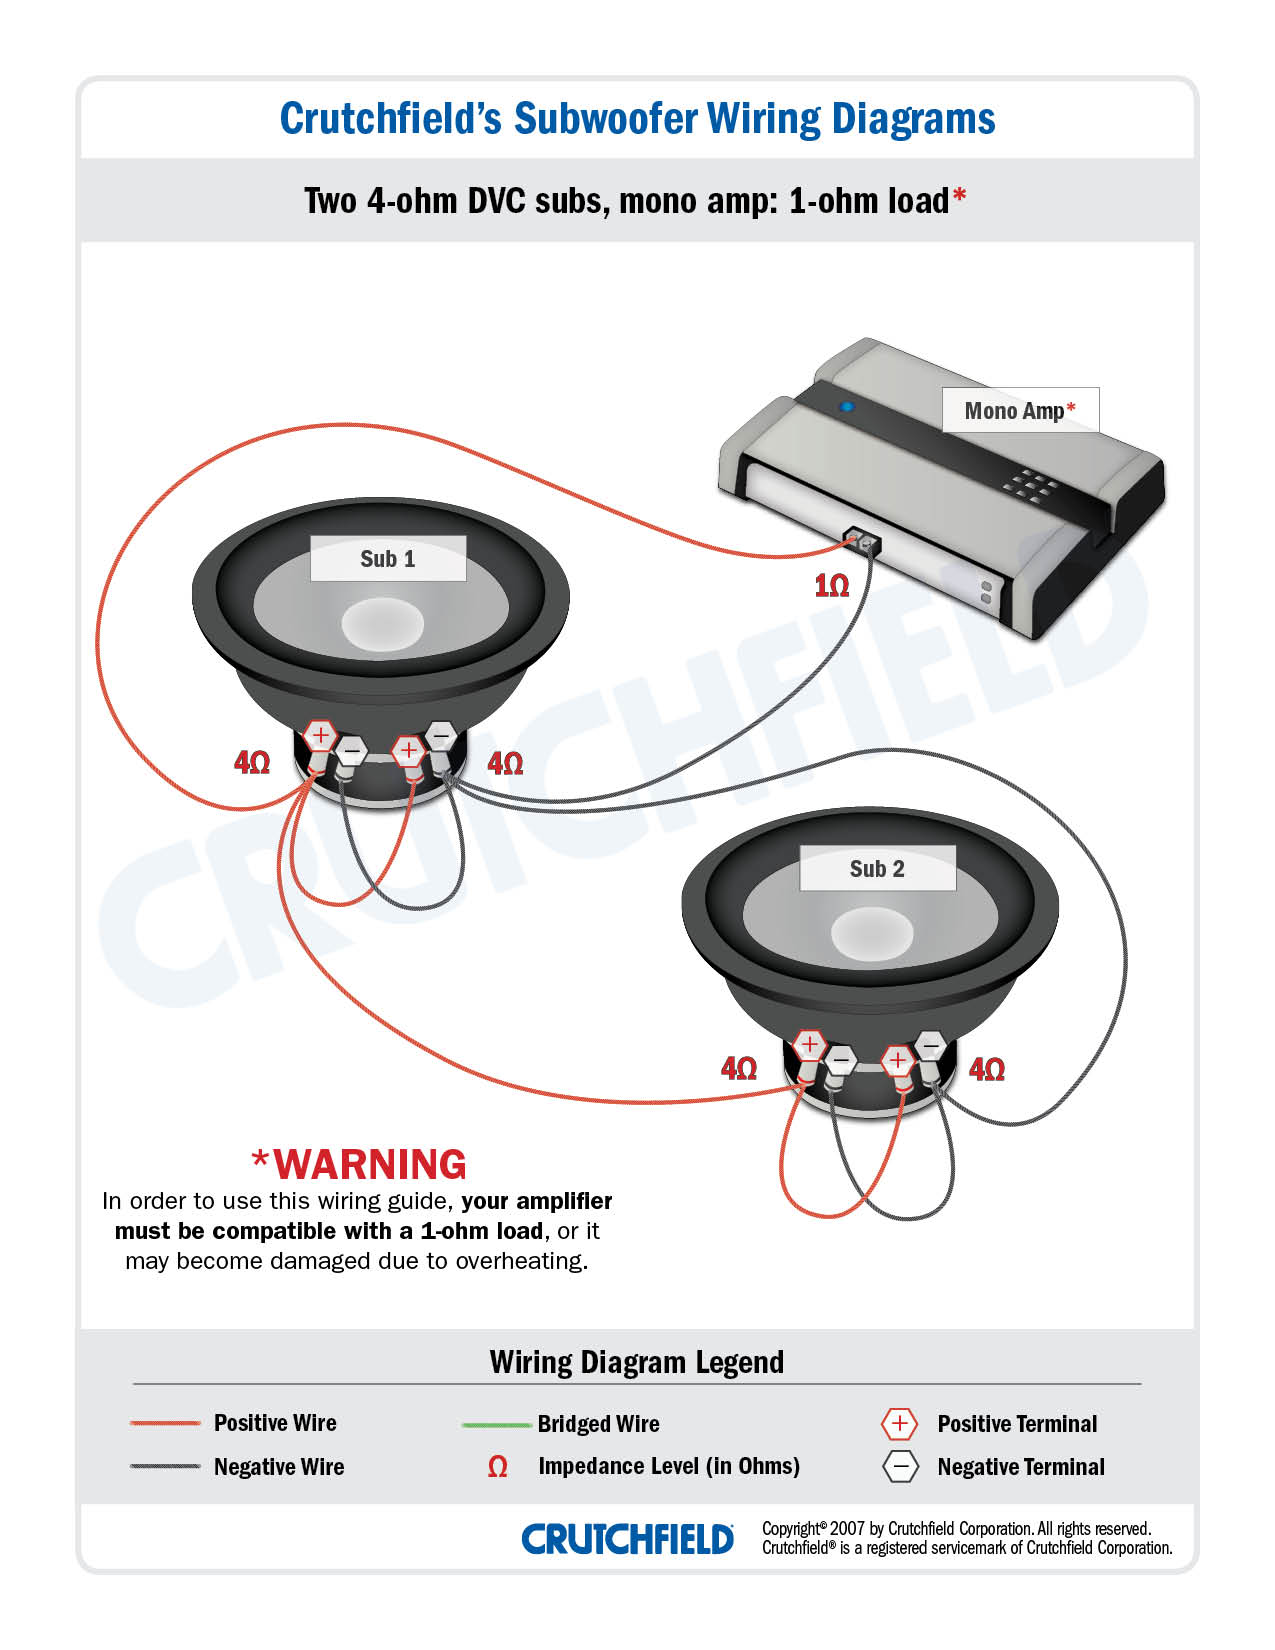 Fabulous Subwoofer Wiring Diagrams How To Wire Your Subs Wiring Digital Resources Cettecompassionincorg